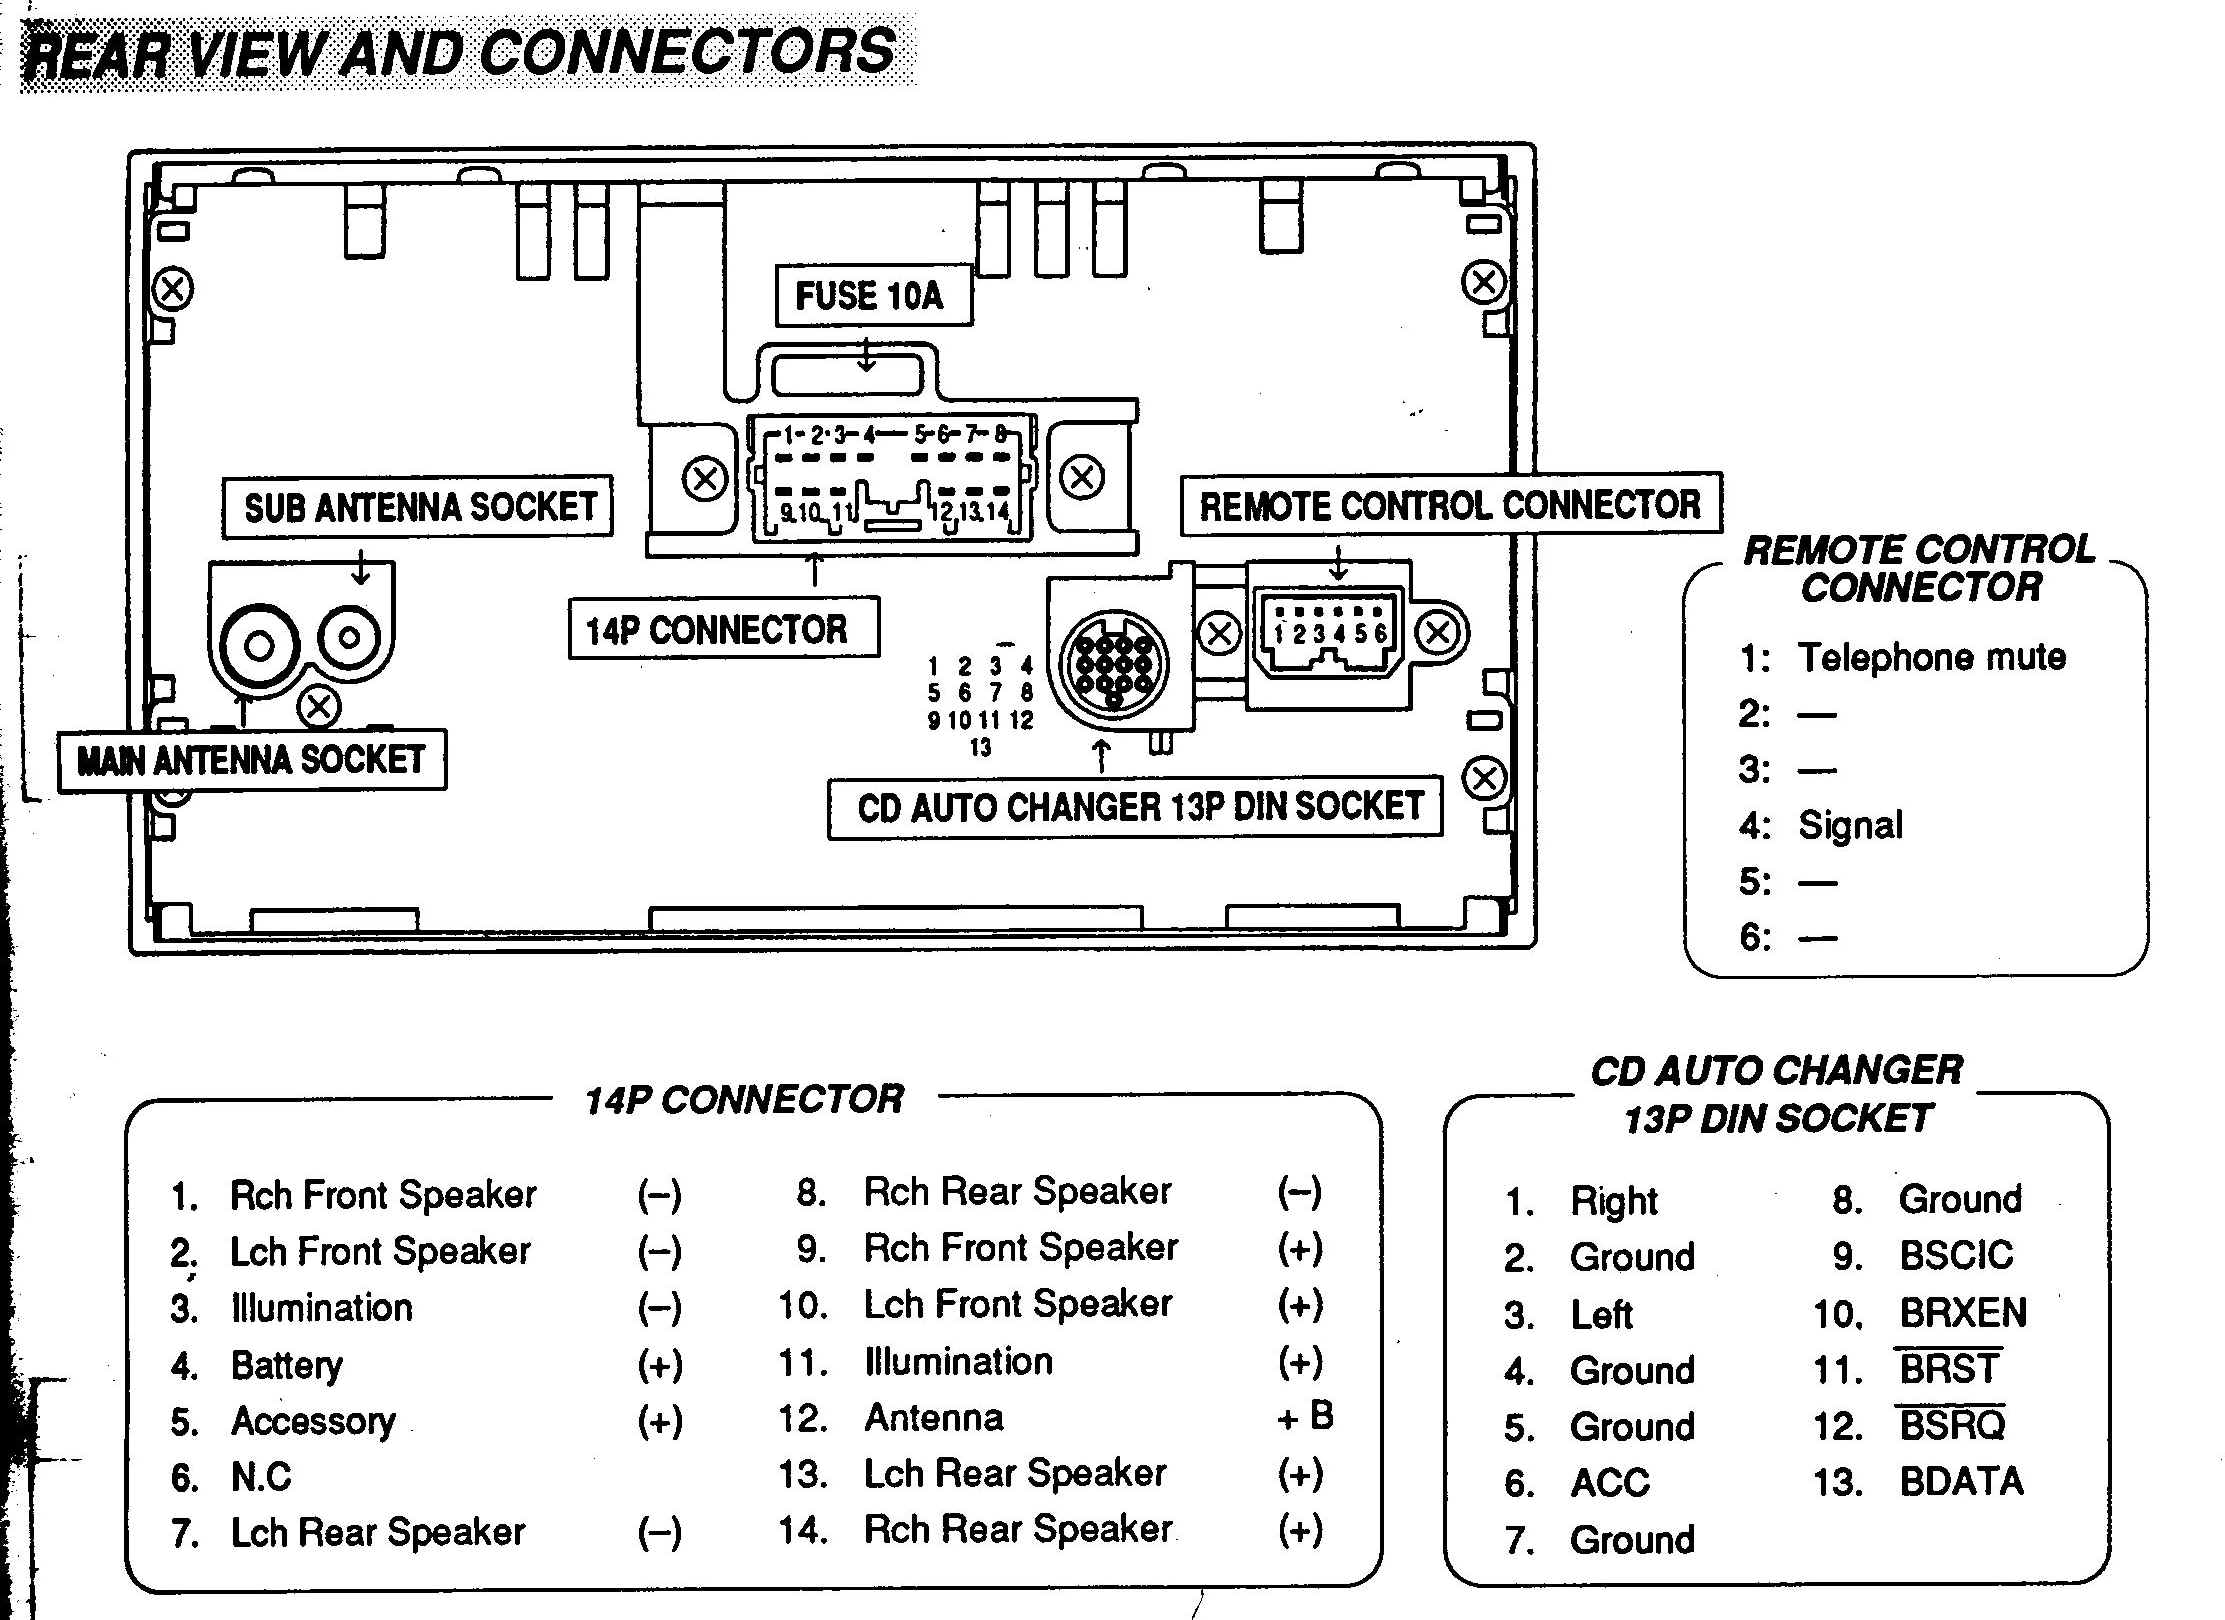 WireHarnessMit121003 radio wiring diagram smart wiring diagrams instruction 2000 jaguar s type radio wire diagram at alyssarenee.co